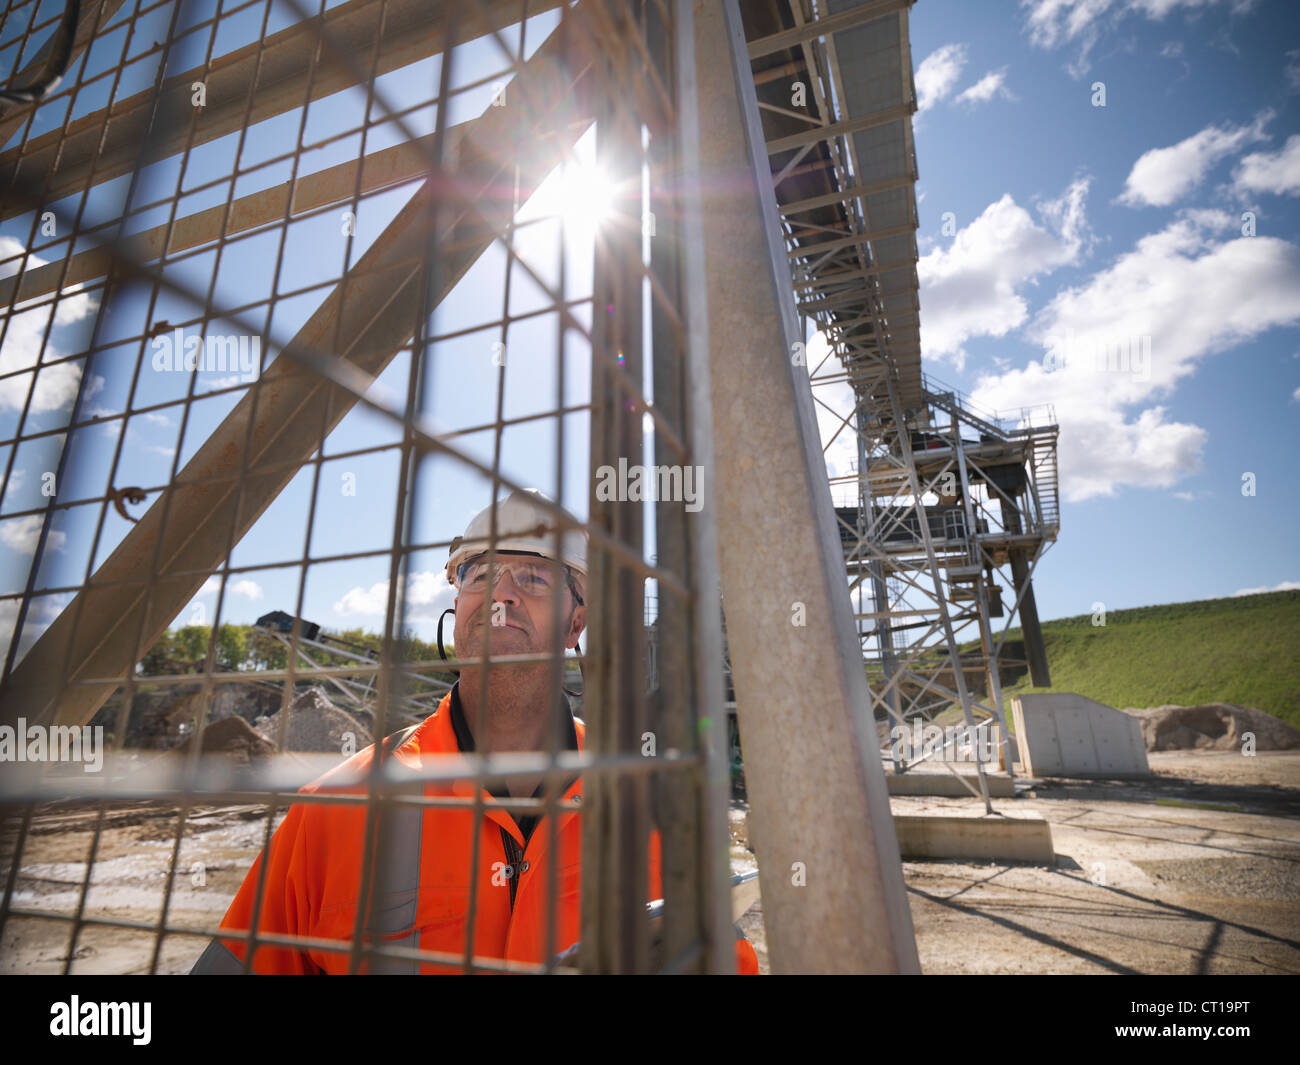 Worker standing under conveyor in quarry - Stock Image